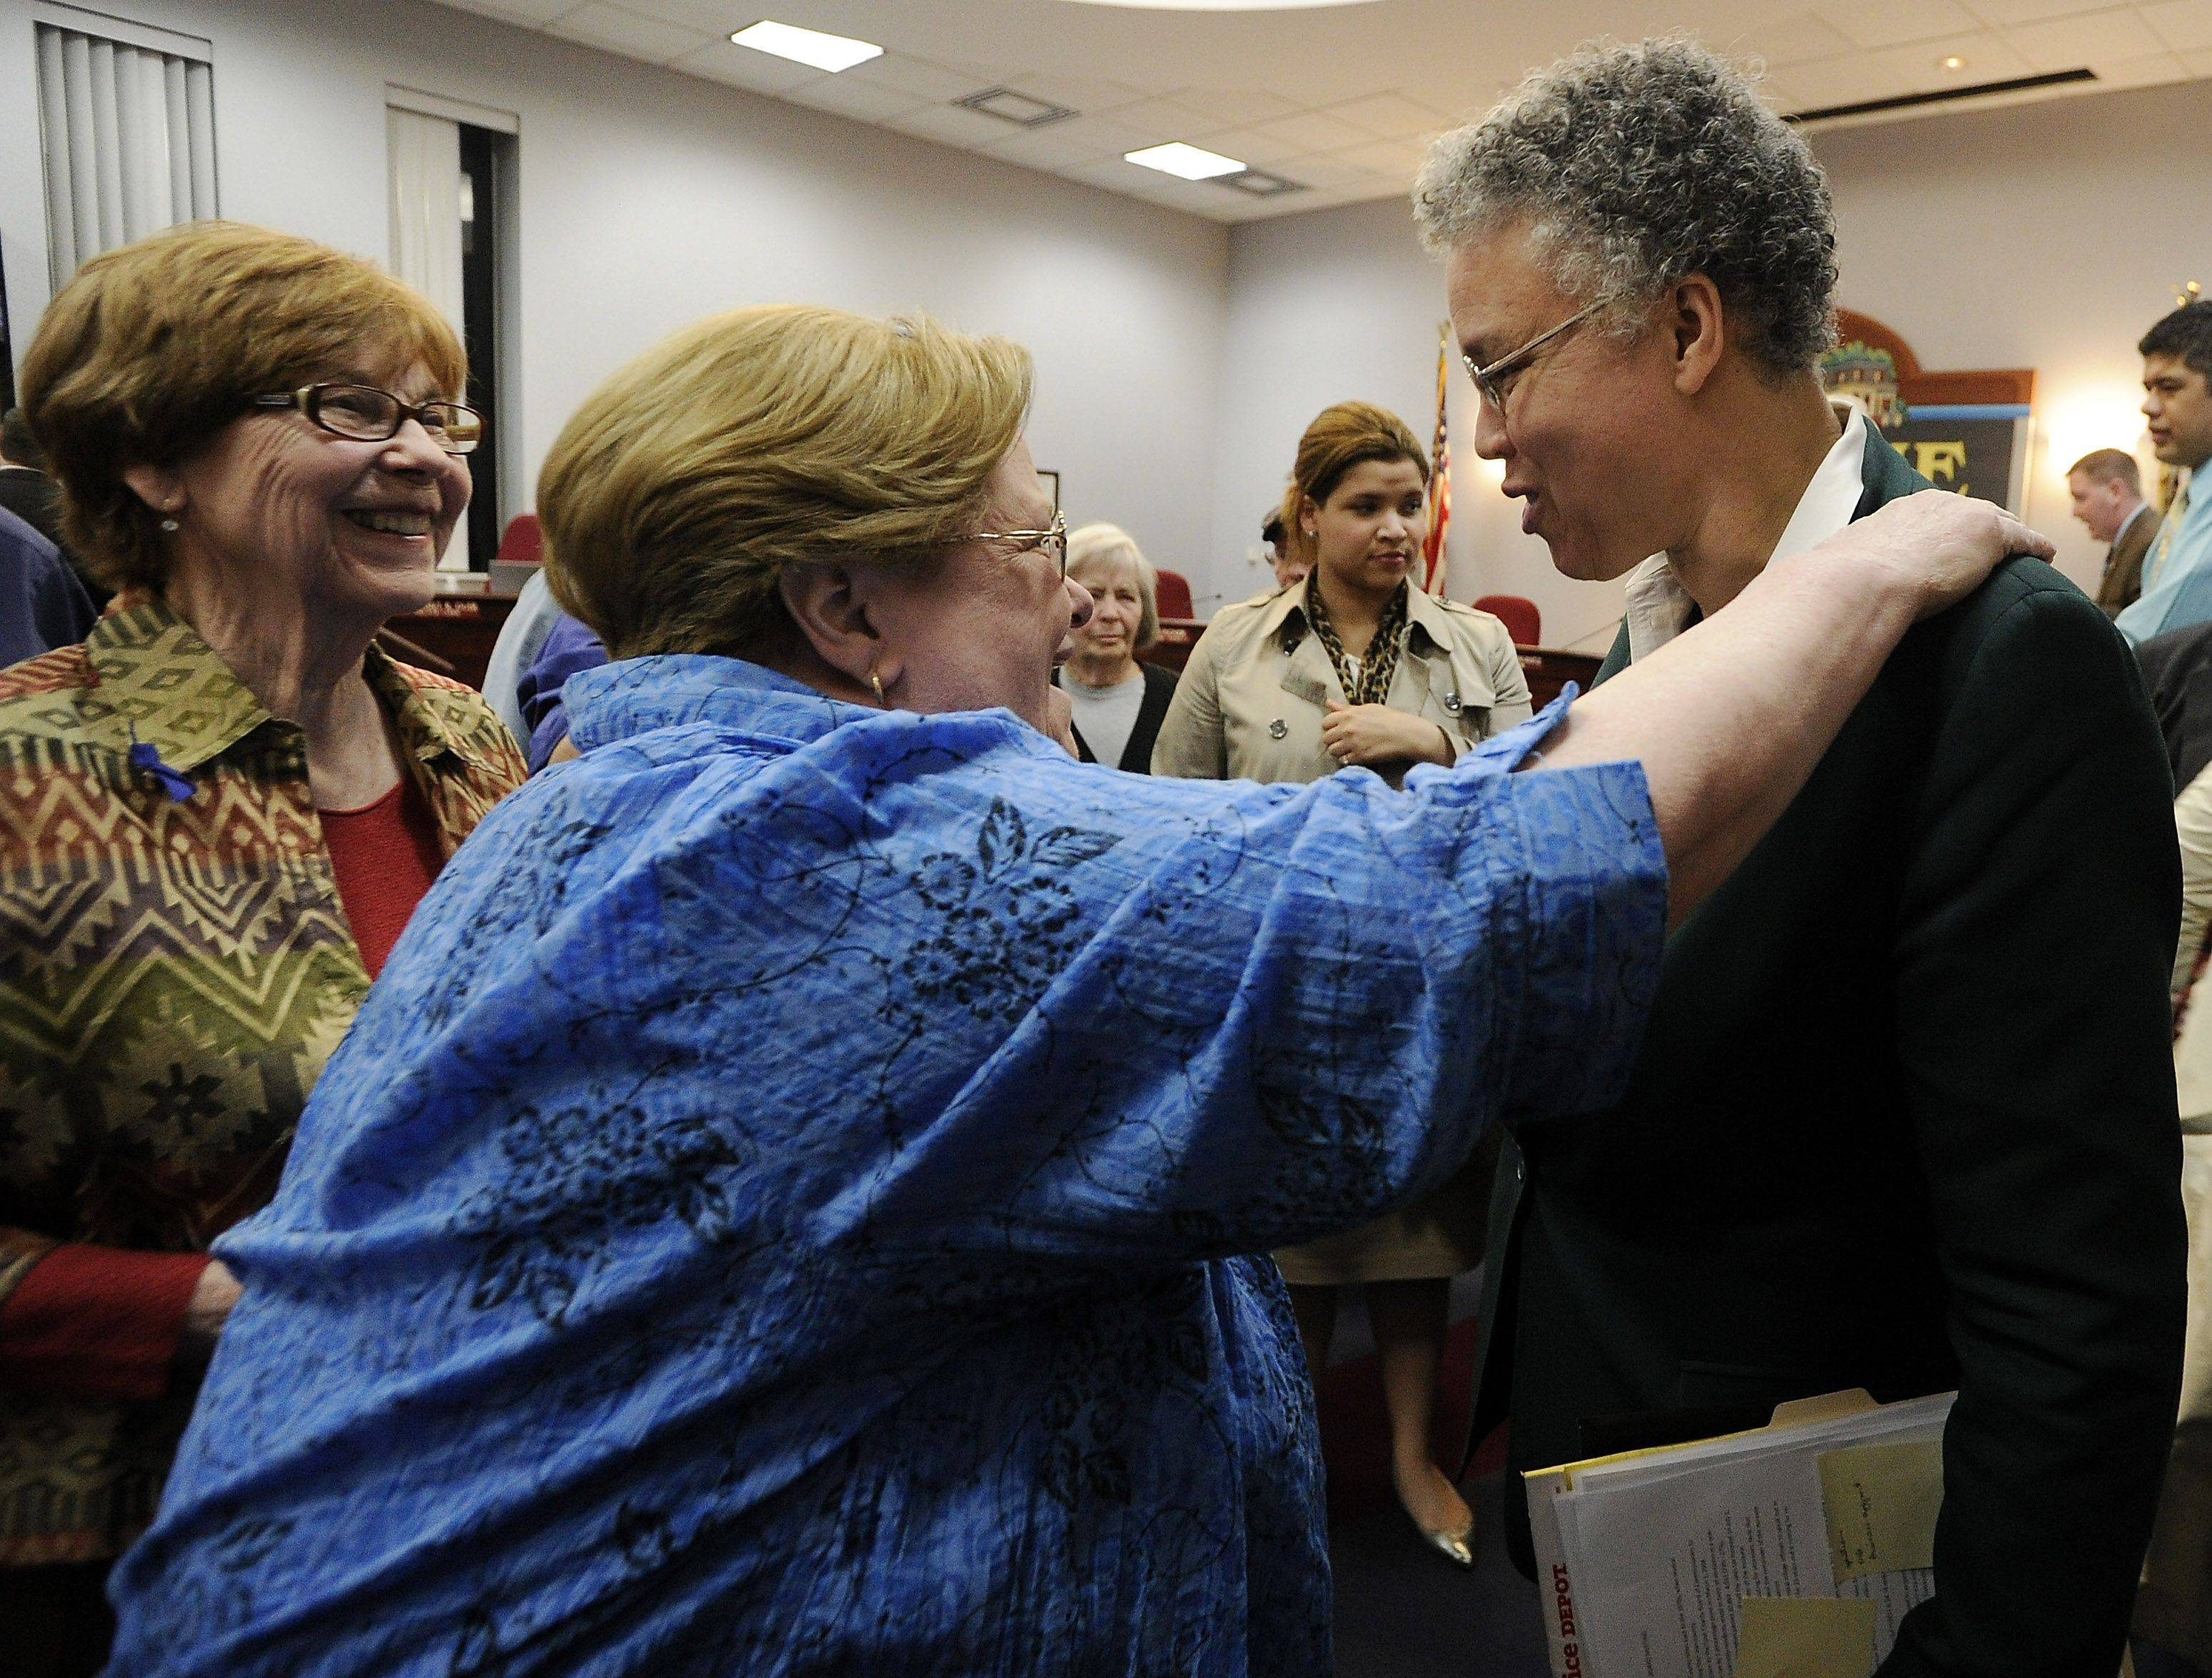 Cook County Board President Toni Preckwinkle got a warm reception from a standing-room-only crowd Monday when she appeared before the Palatine village council and Mayor Jim Schwantz to discuss county services.